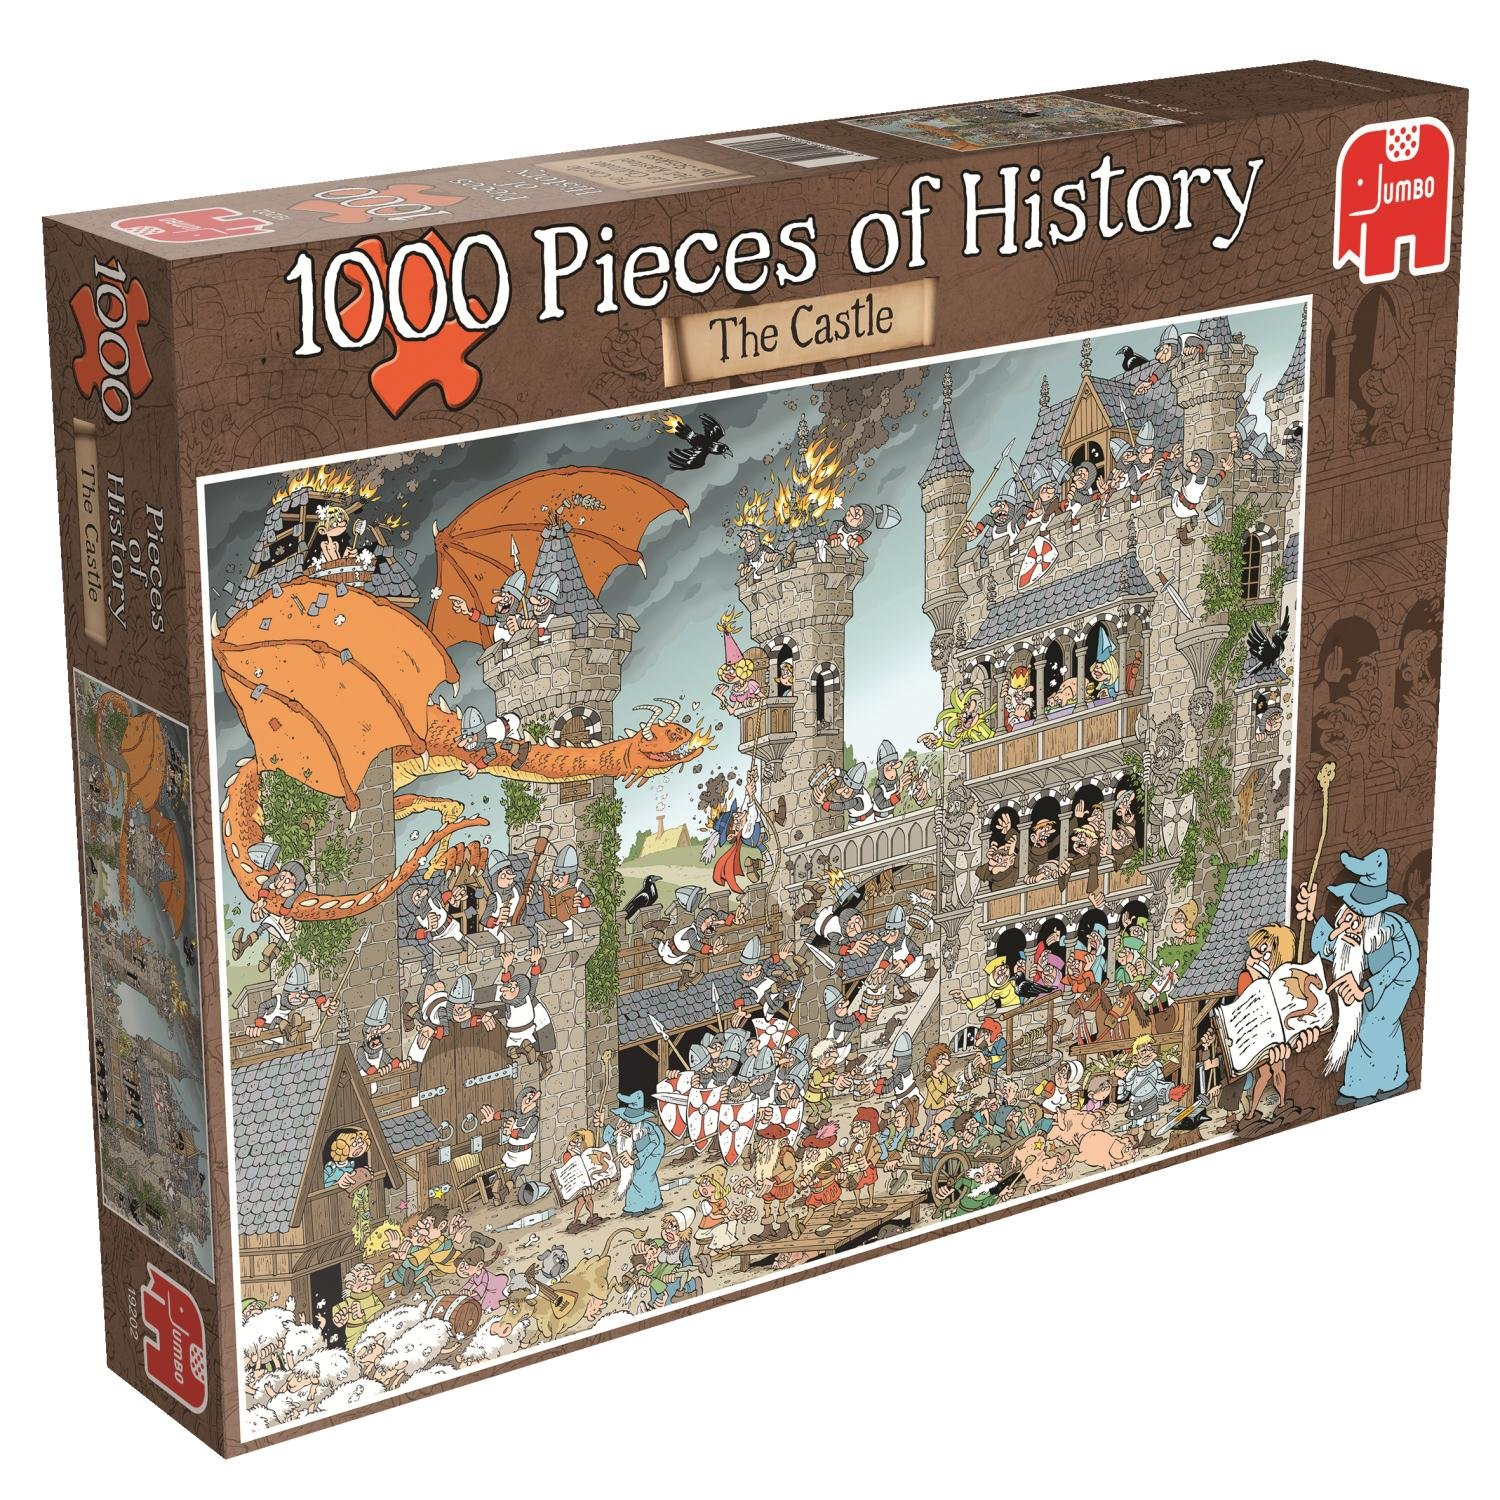 1000 Pieces of History – The Castle Jigsaw Puzzle (1000-Piece)